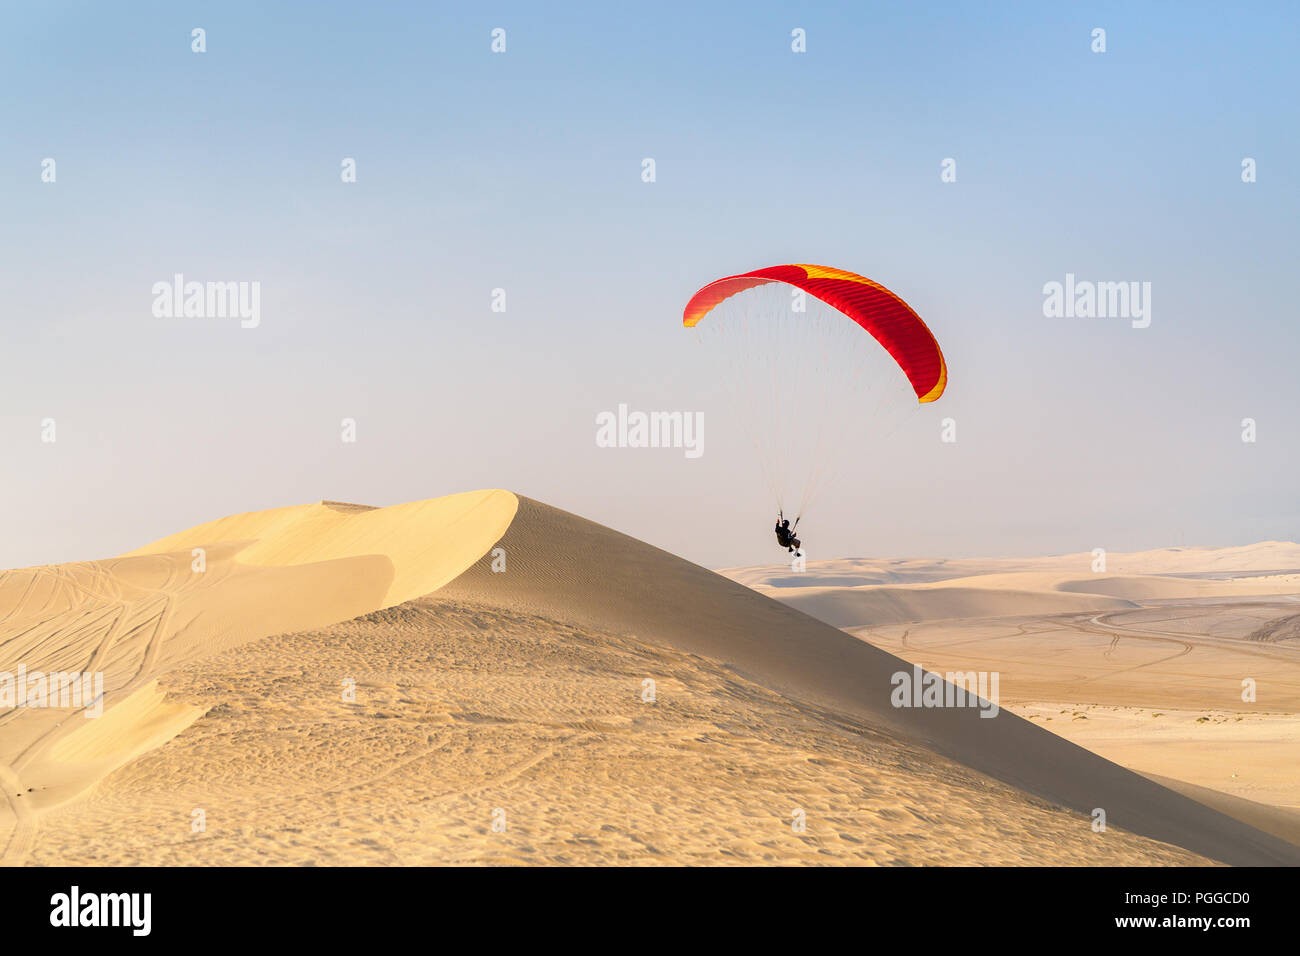 Unrecognizable paraglider flying over sand dunes in Qatar desert - Stock Image